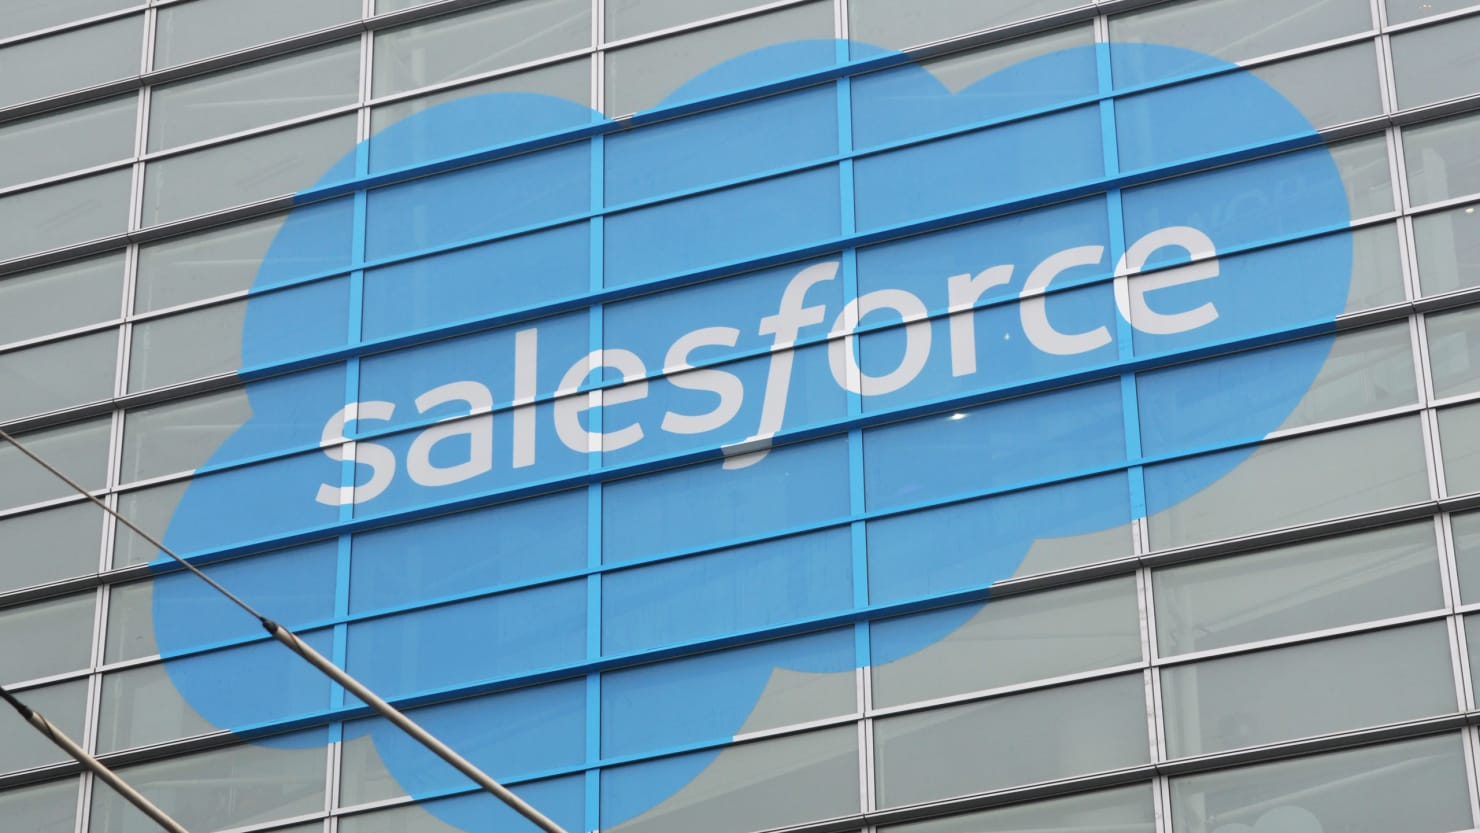 Learn Salesforce To Excel In Your Career Or Launch Your Own Business